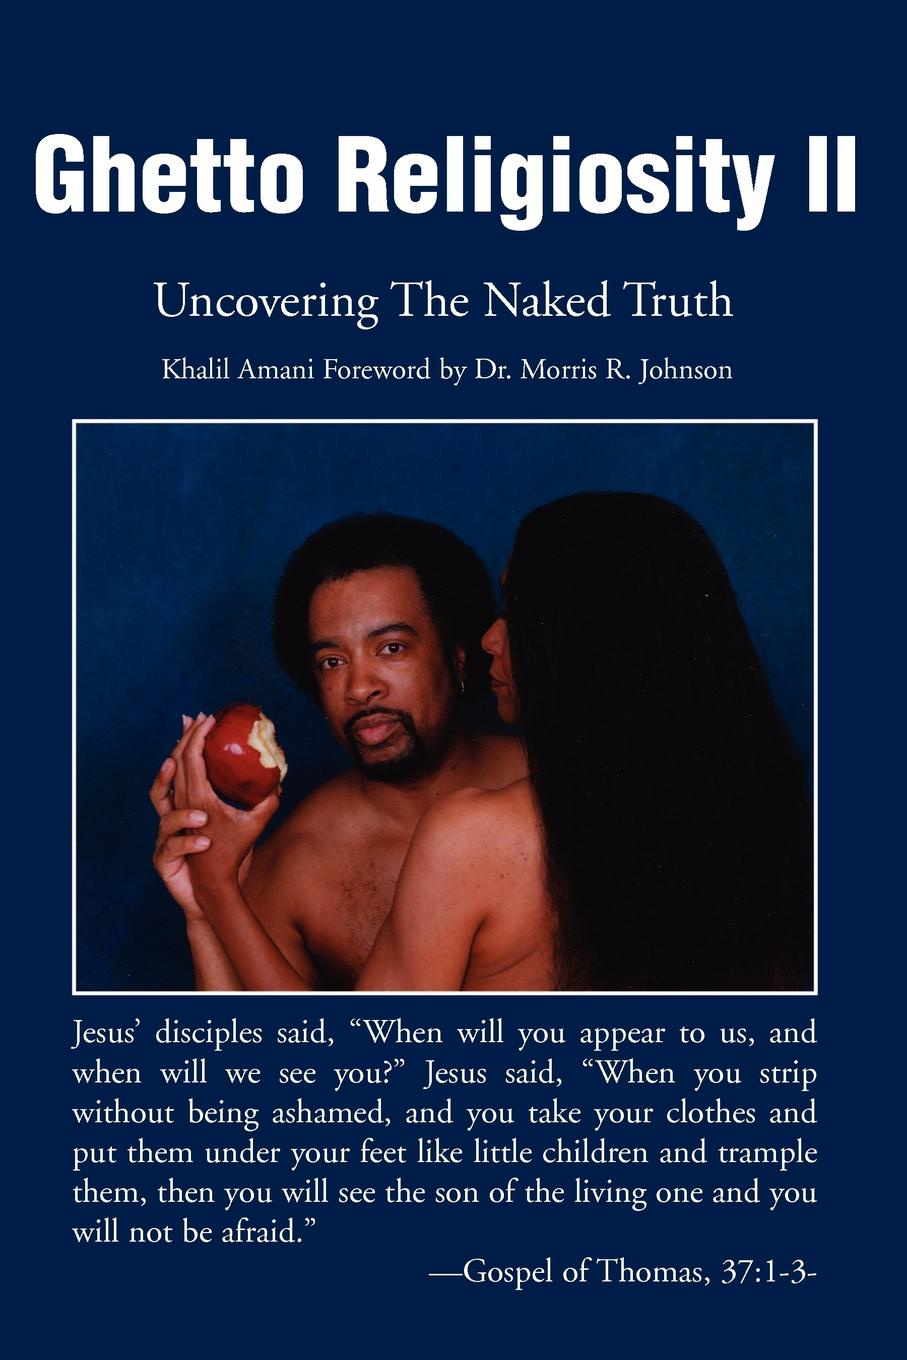 Khalil Amani Ghetto Religiosity II Uncovering the Naked Truth